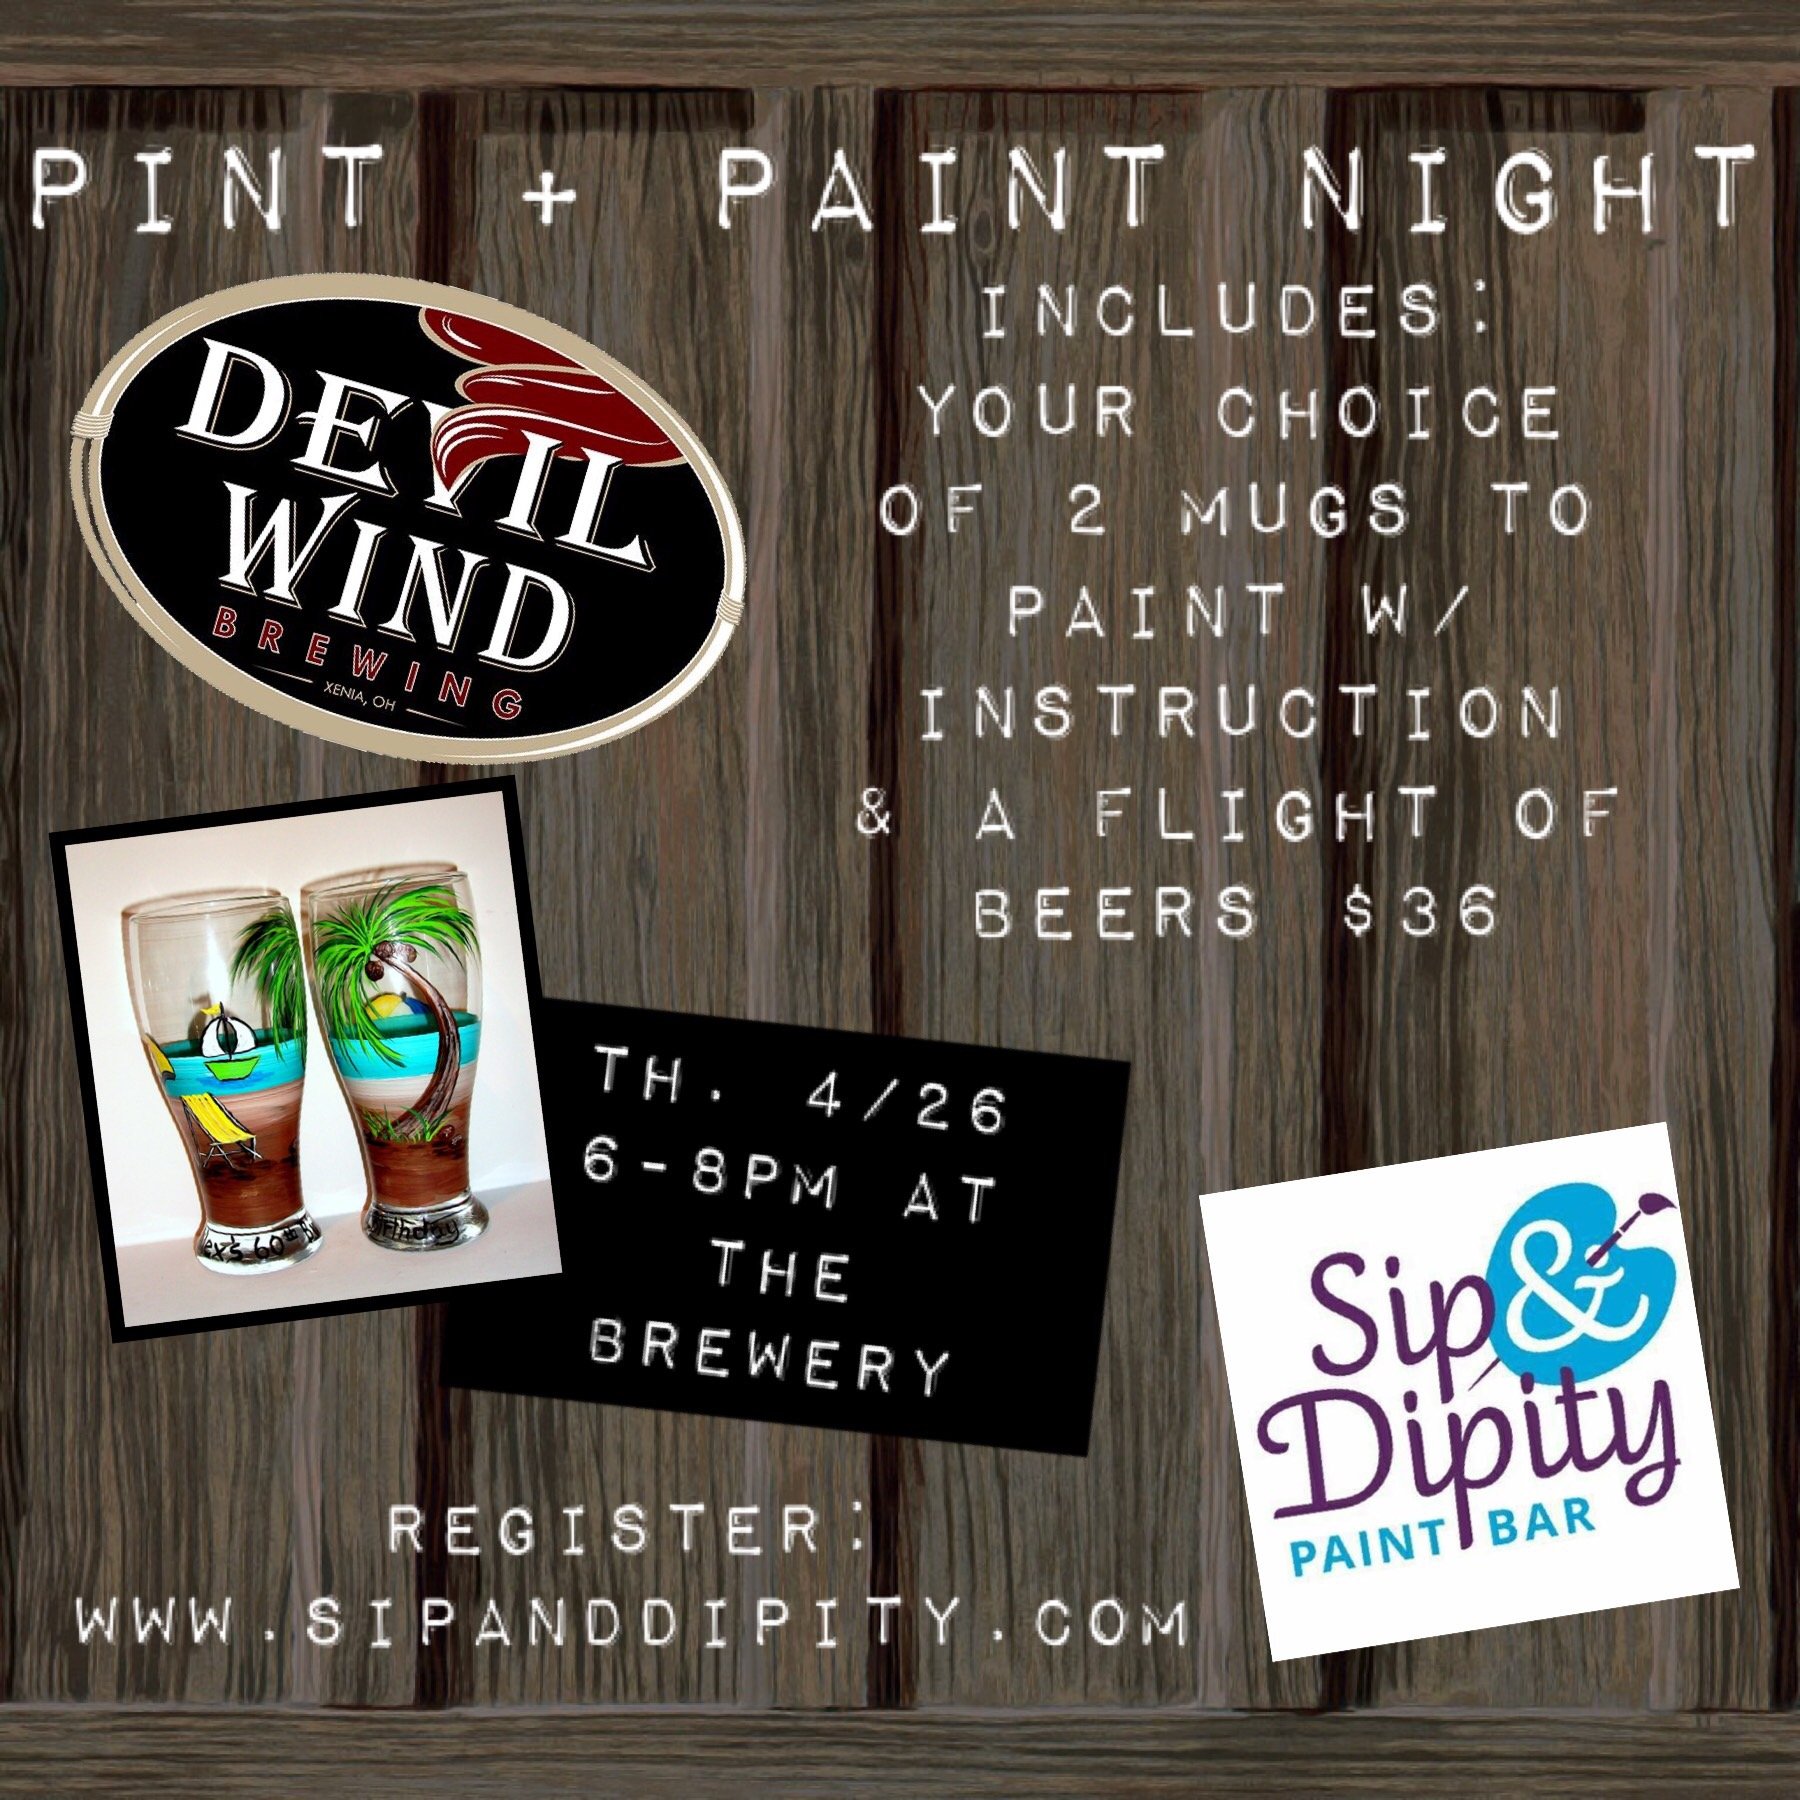 Pint + Paint at Devil Wind Brewery